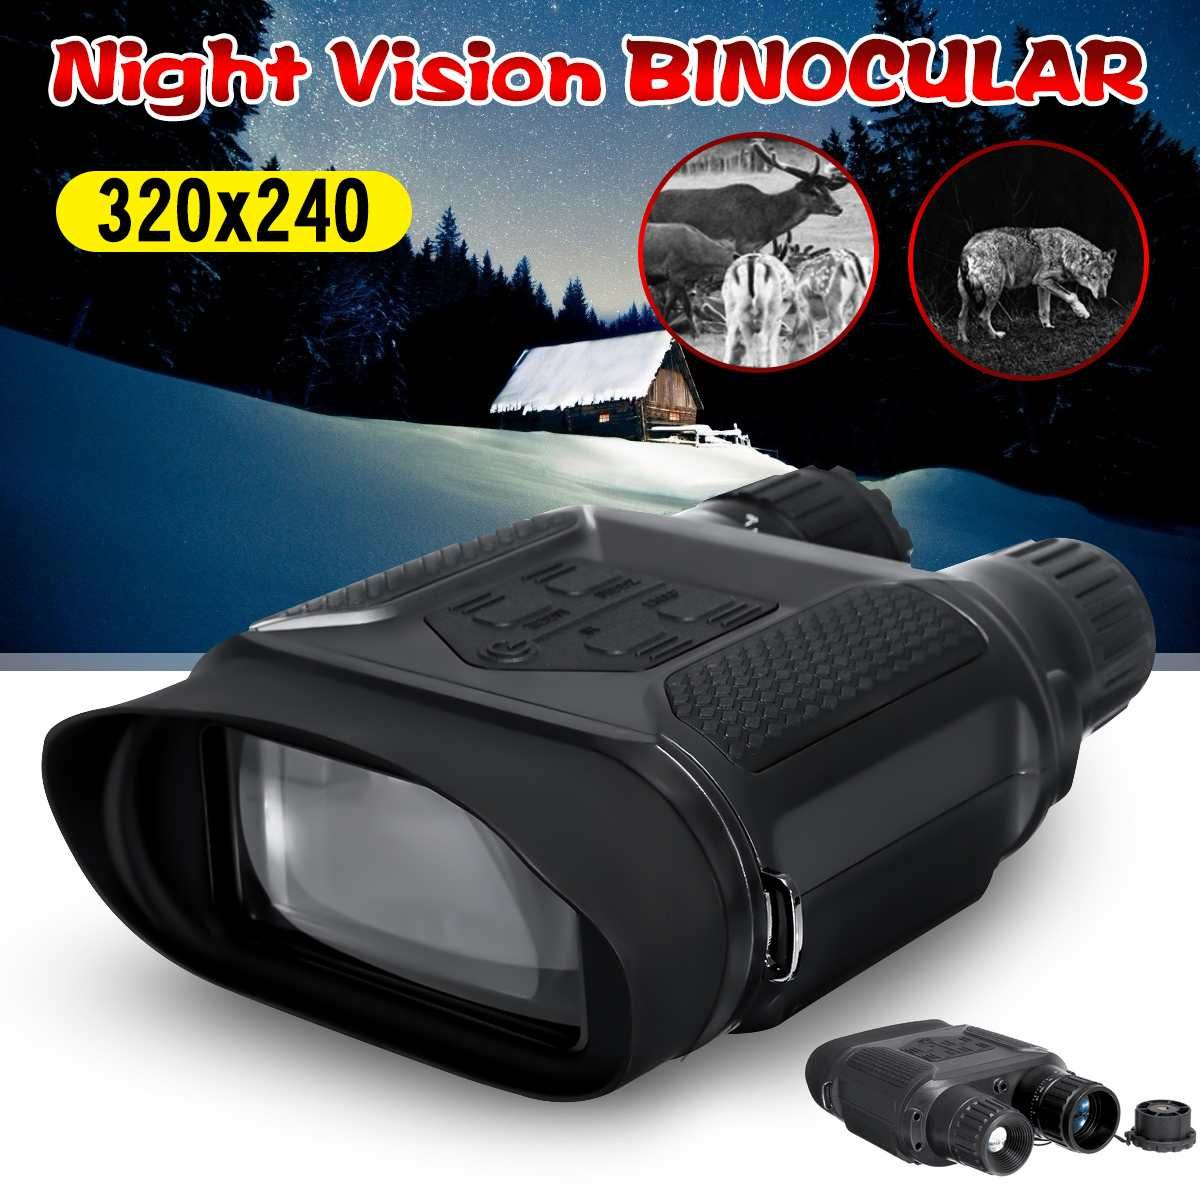 Night Vision Binocular 1300ft/400m High Definition Digital Infrared Night Vision Scope for Hunting Photo Camera Video Recorder